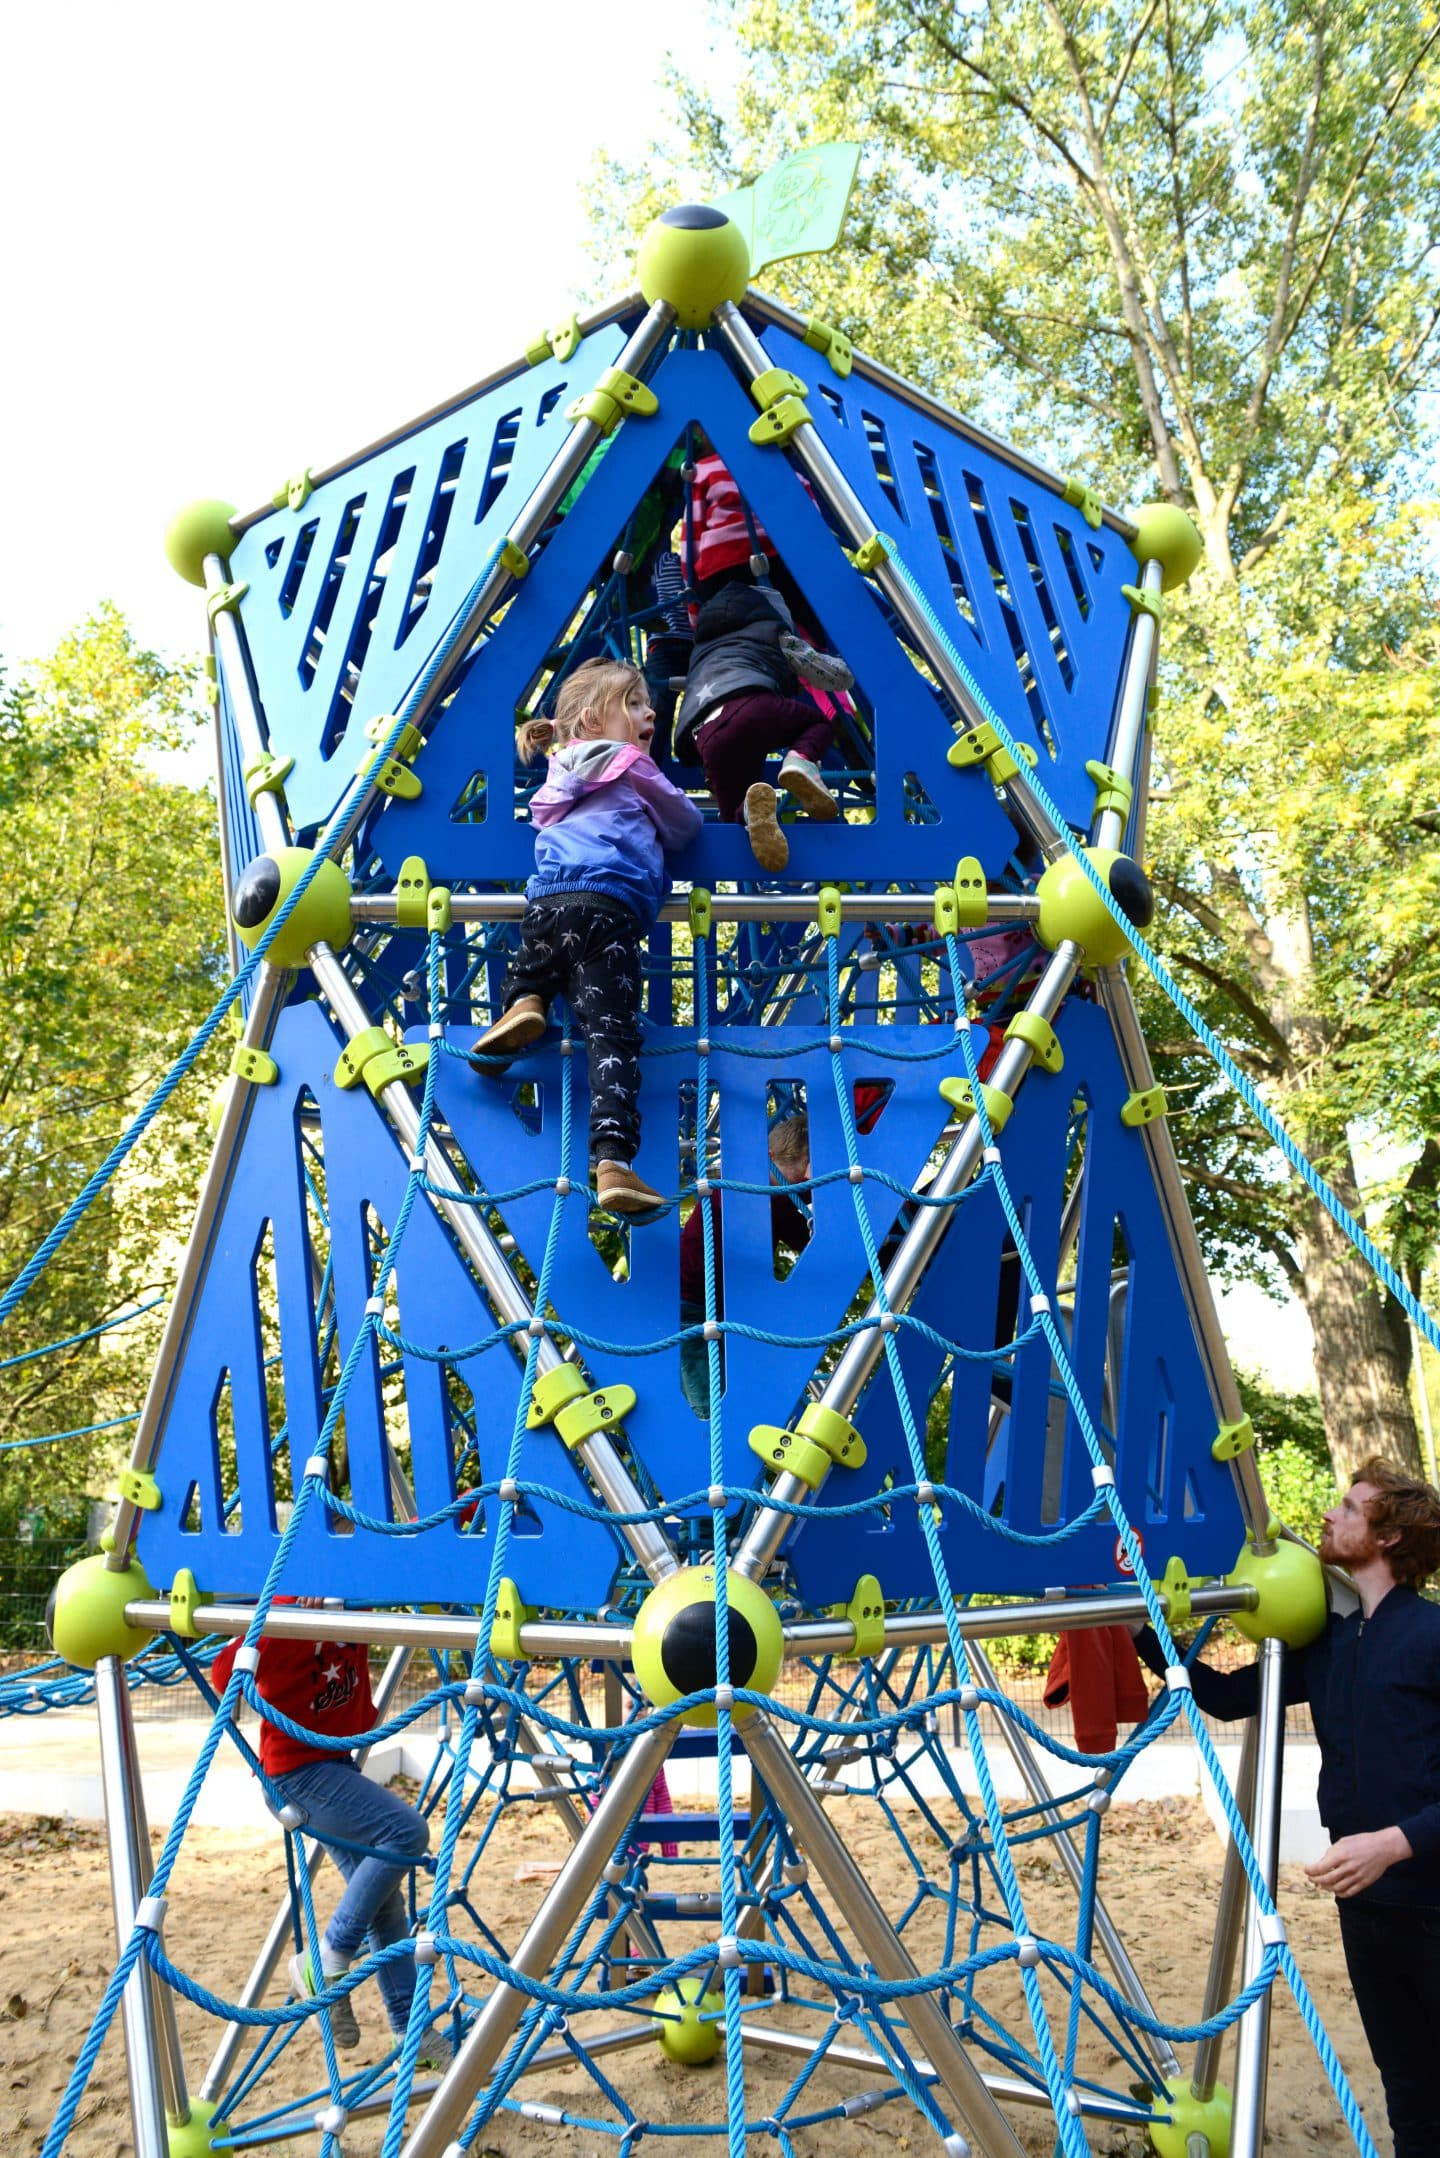 Climbing tower - Berliner Seilfabrik - Play equipment for life